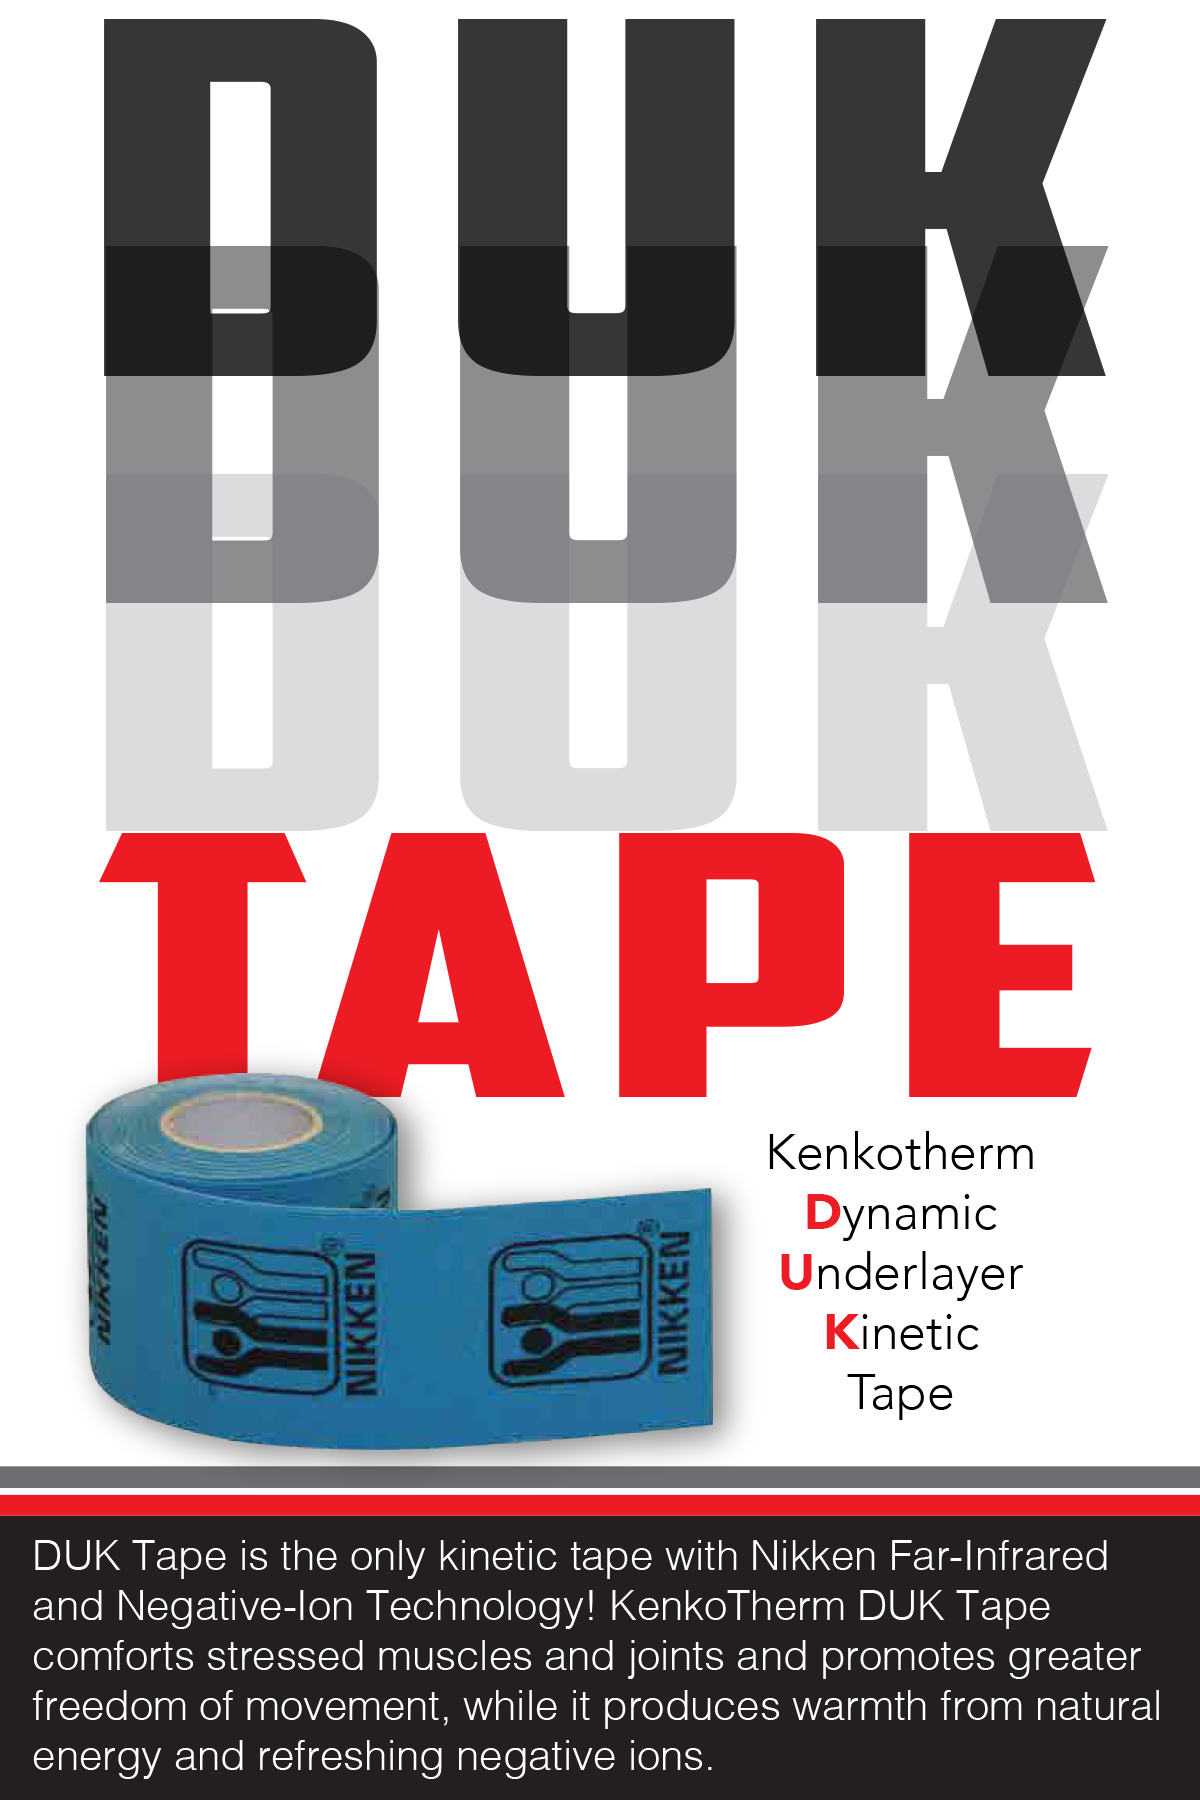 DUK DUK DUK Tape flyer design.png